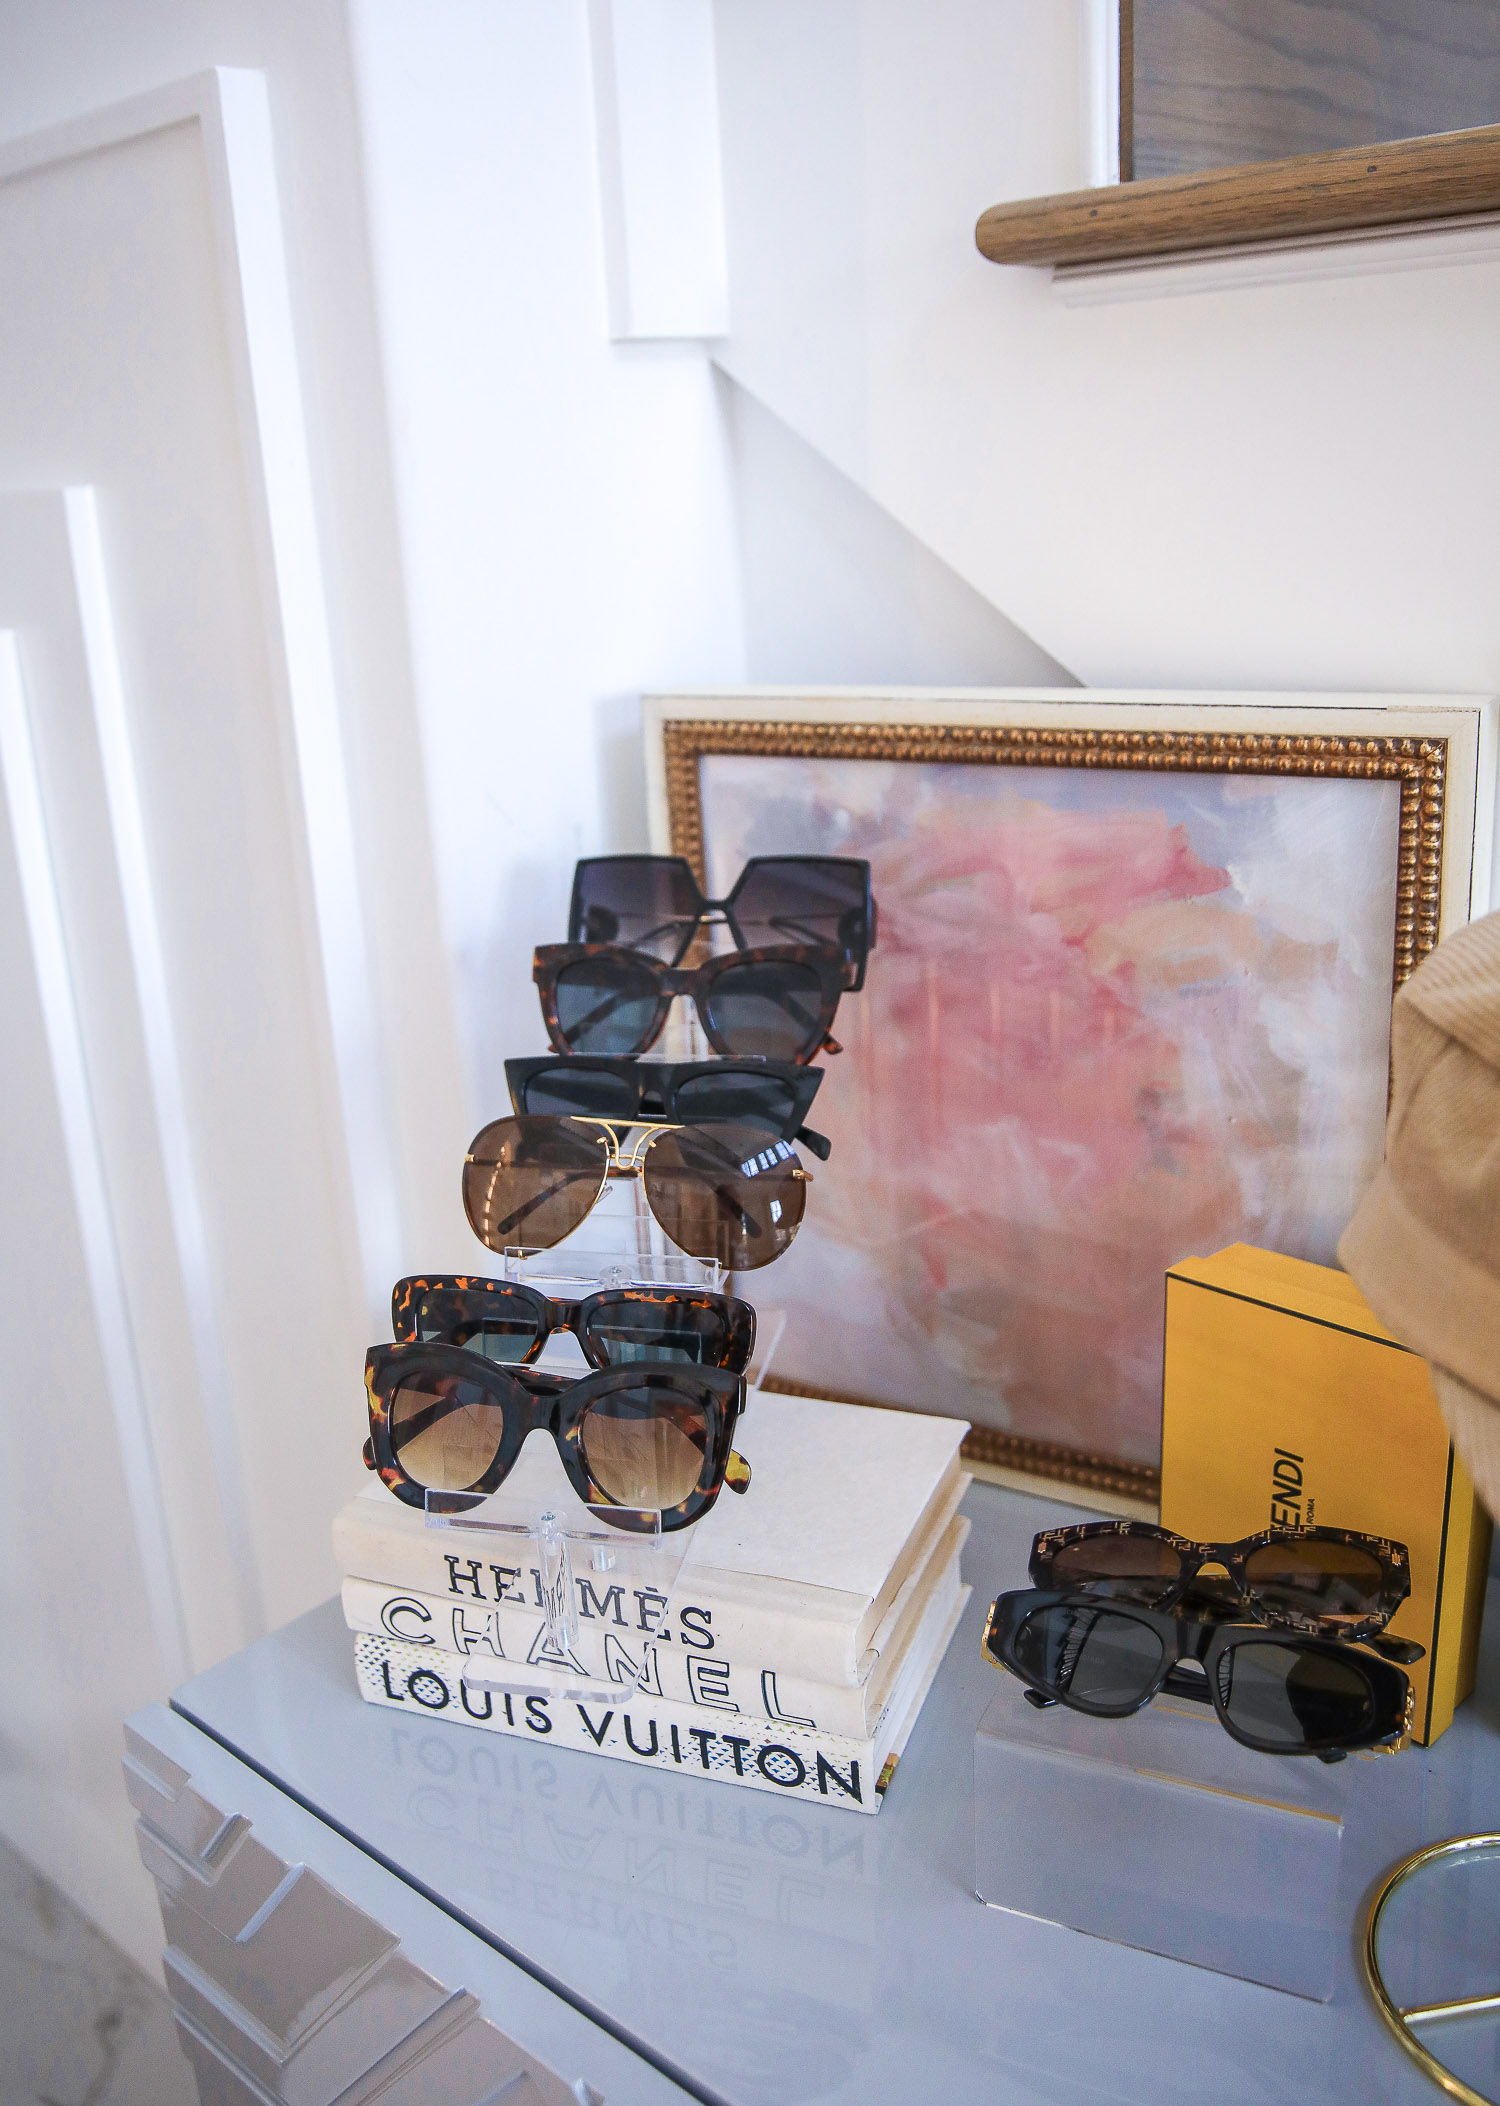 Amazon home decor sunglasses display, acrylic sunglasses display, best amazon sunglasses summer 2021, Emily Gemma |Amazon Must Haves by popular US life and style blog, The Sweetest Thing: image of a orange Hermes tray filled with gold earring stands, Louis Vuitton jewelry, and a glass dish filled with mints, sunglasses on an acrylic sunglasses stand, and Christian Dior hat on a gold hat stand.